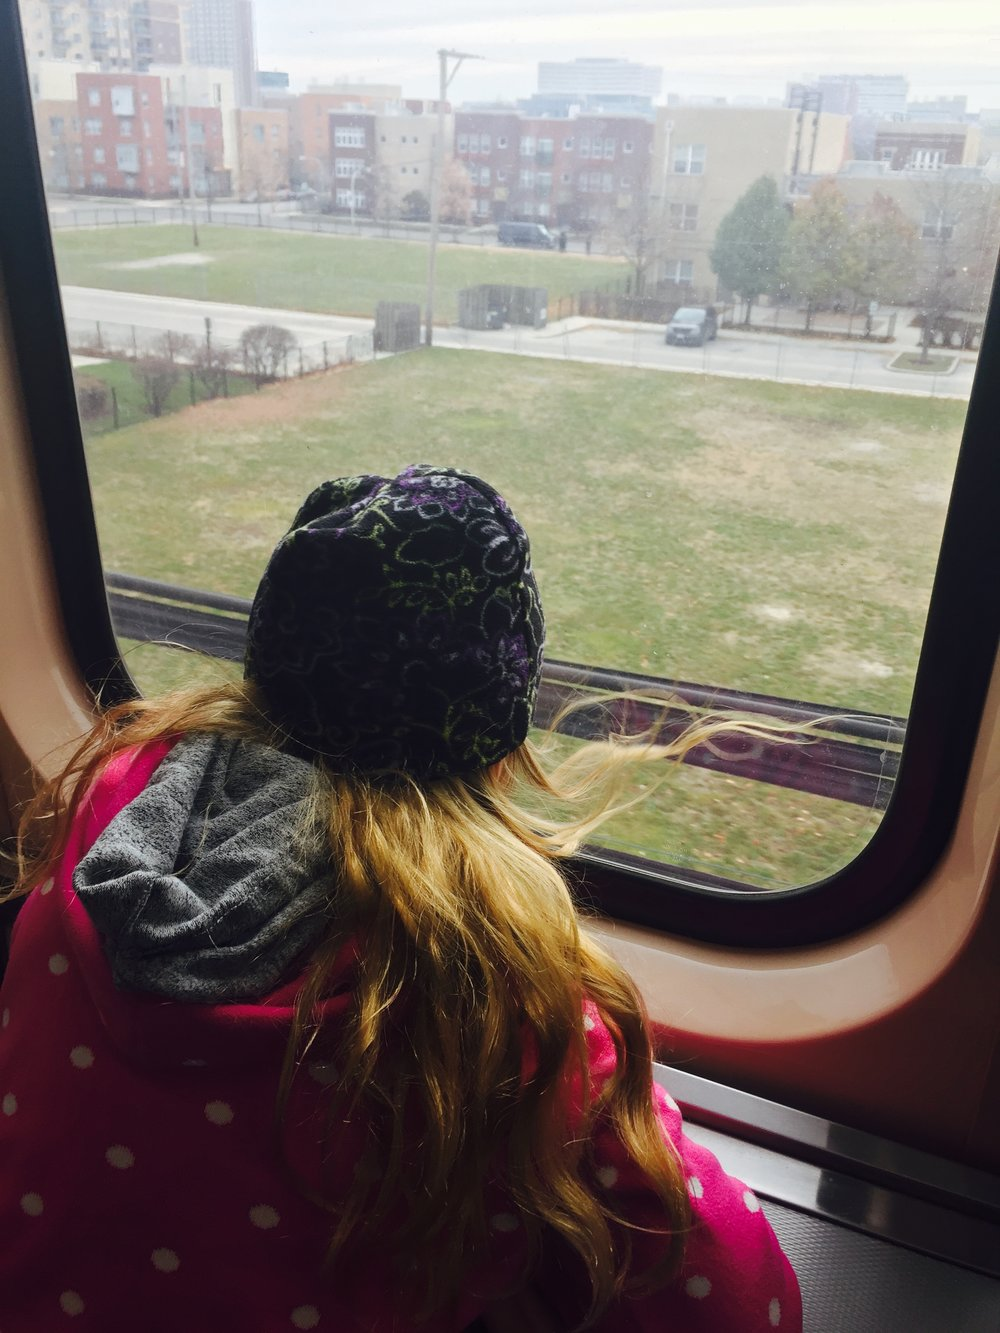 Riding the CTA Green Line from Oak Park to downtown Chicago. Photo: D. Wilson